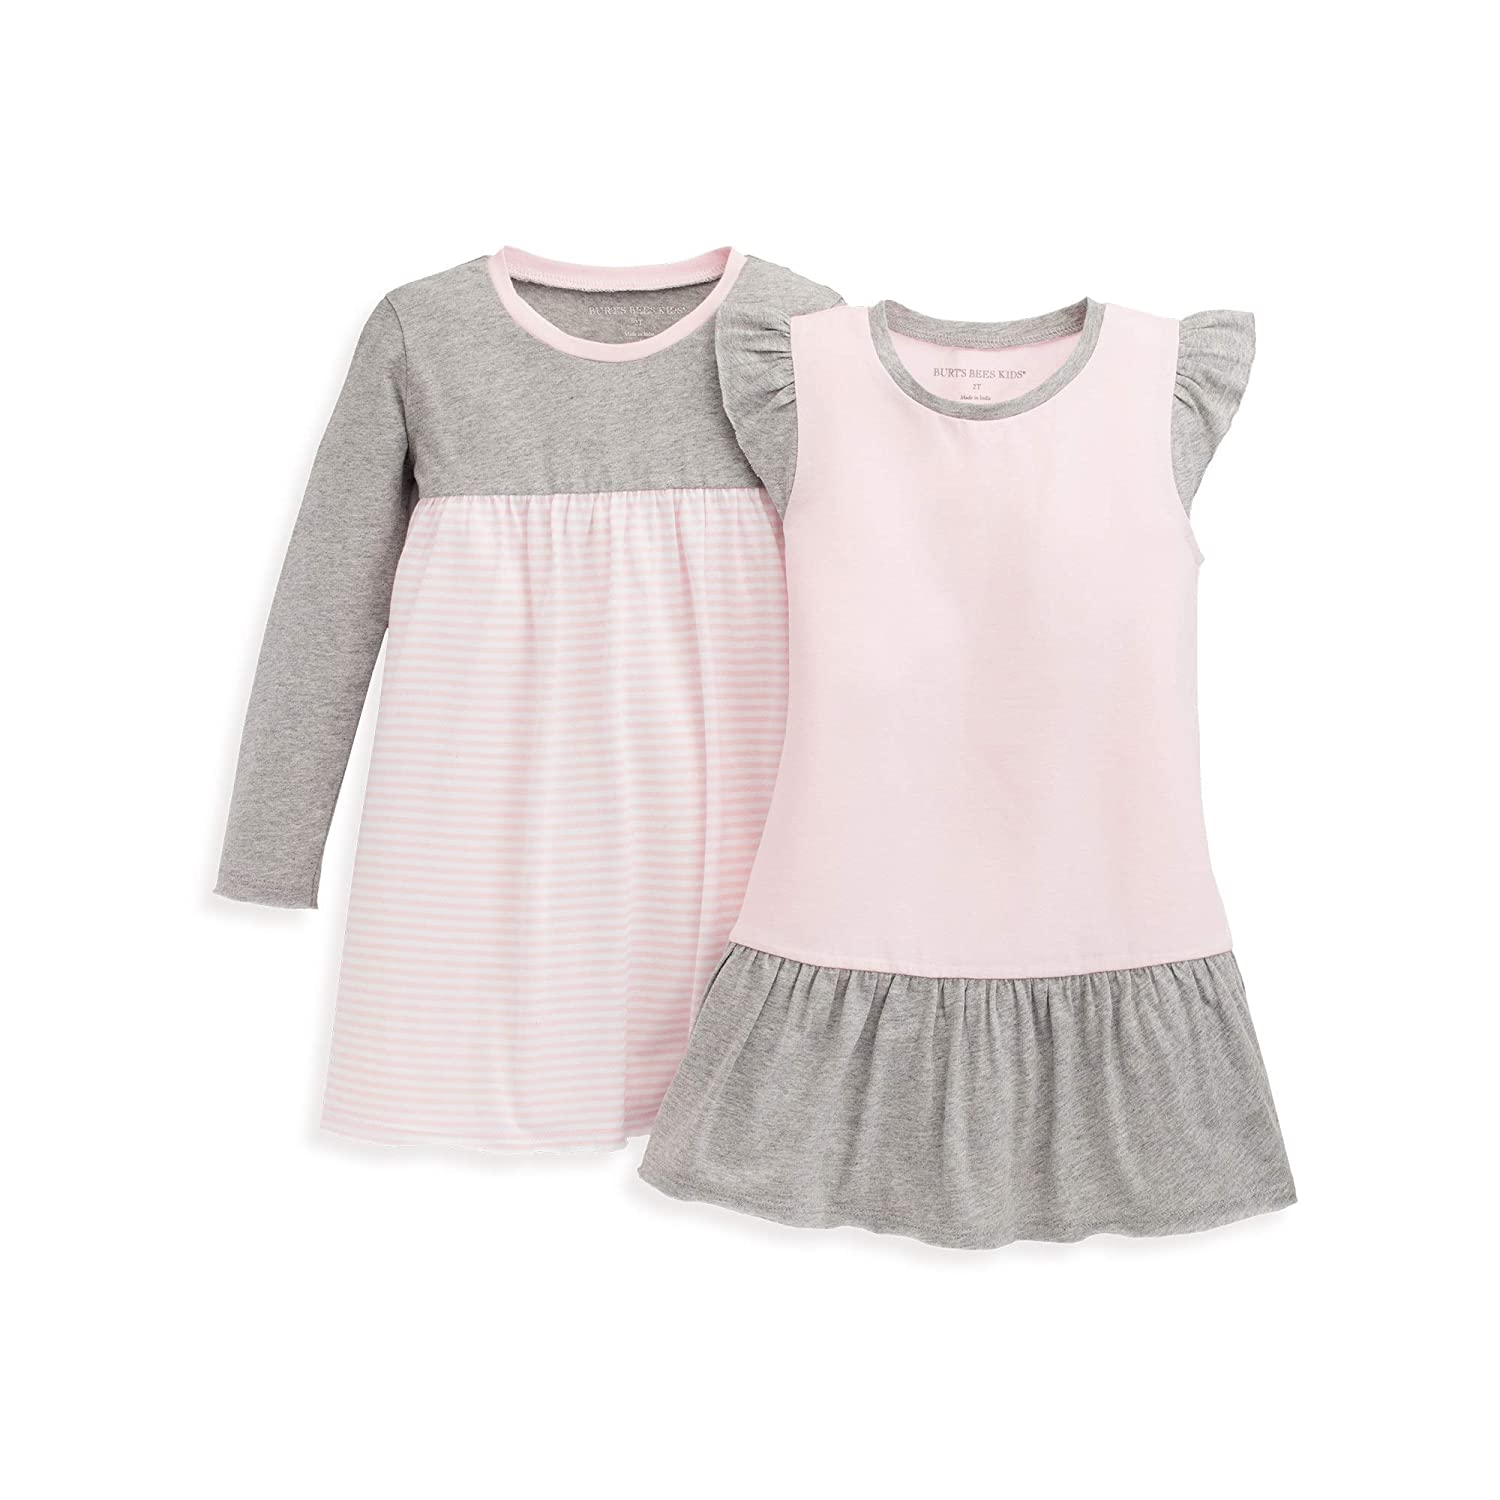 Burts Bees Baby Baby Girls Dress Short /& Long-Sleeve Infant /& Toddler 100/% Organic Cotton